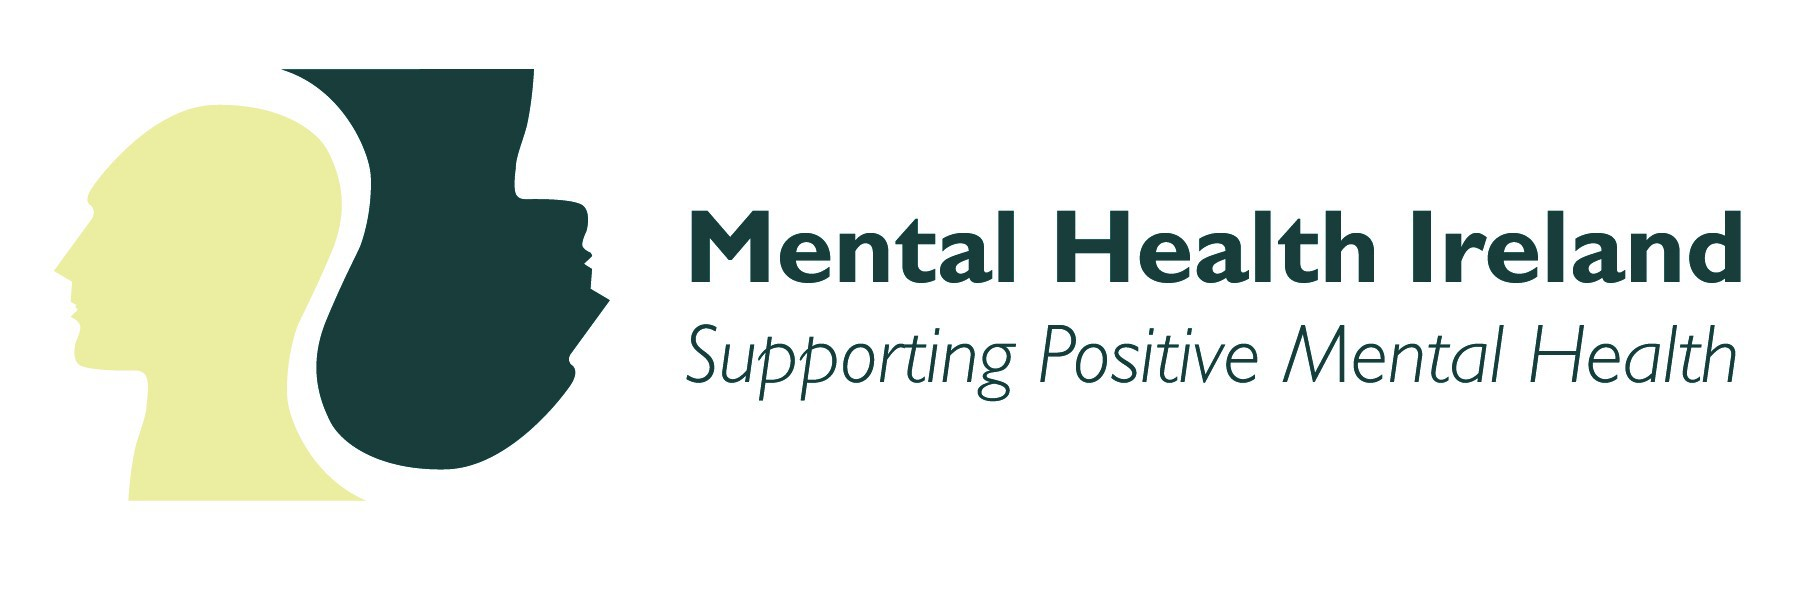 Mental Health Ireland - Sligo/Leitrim